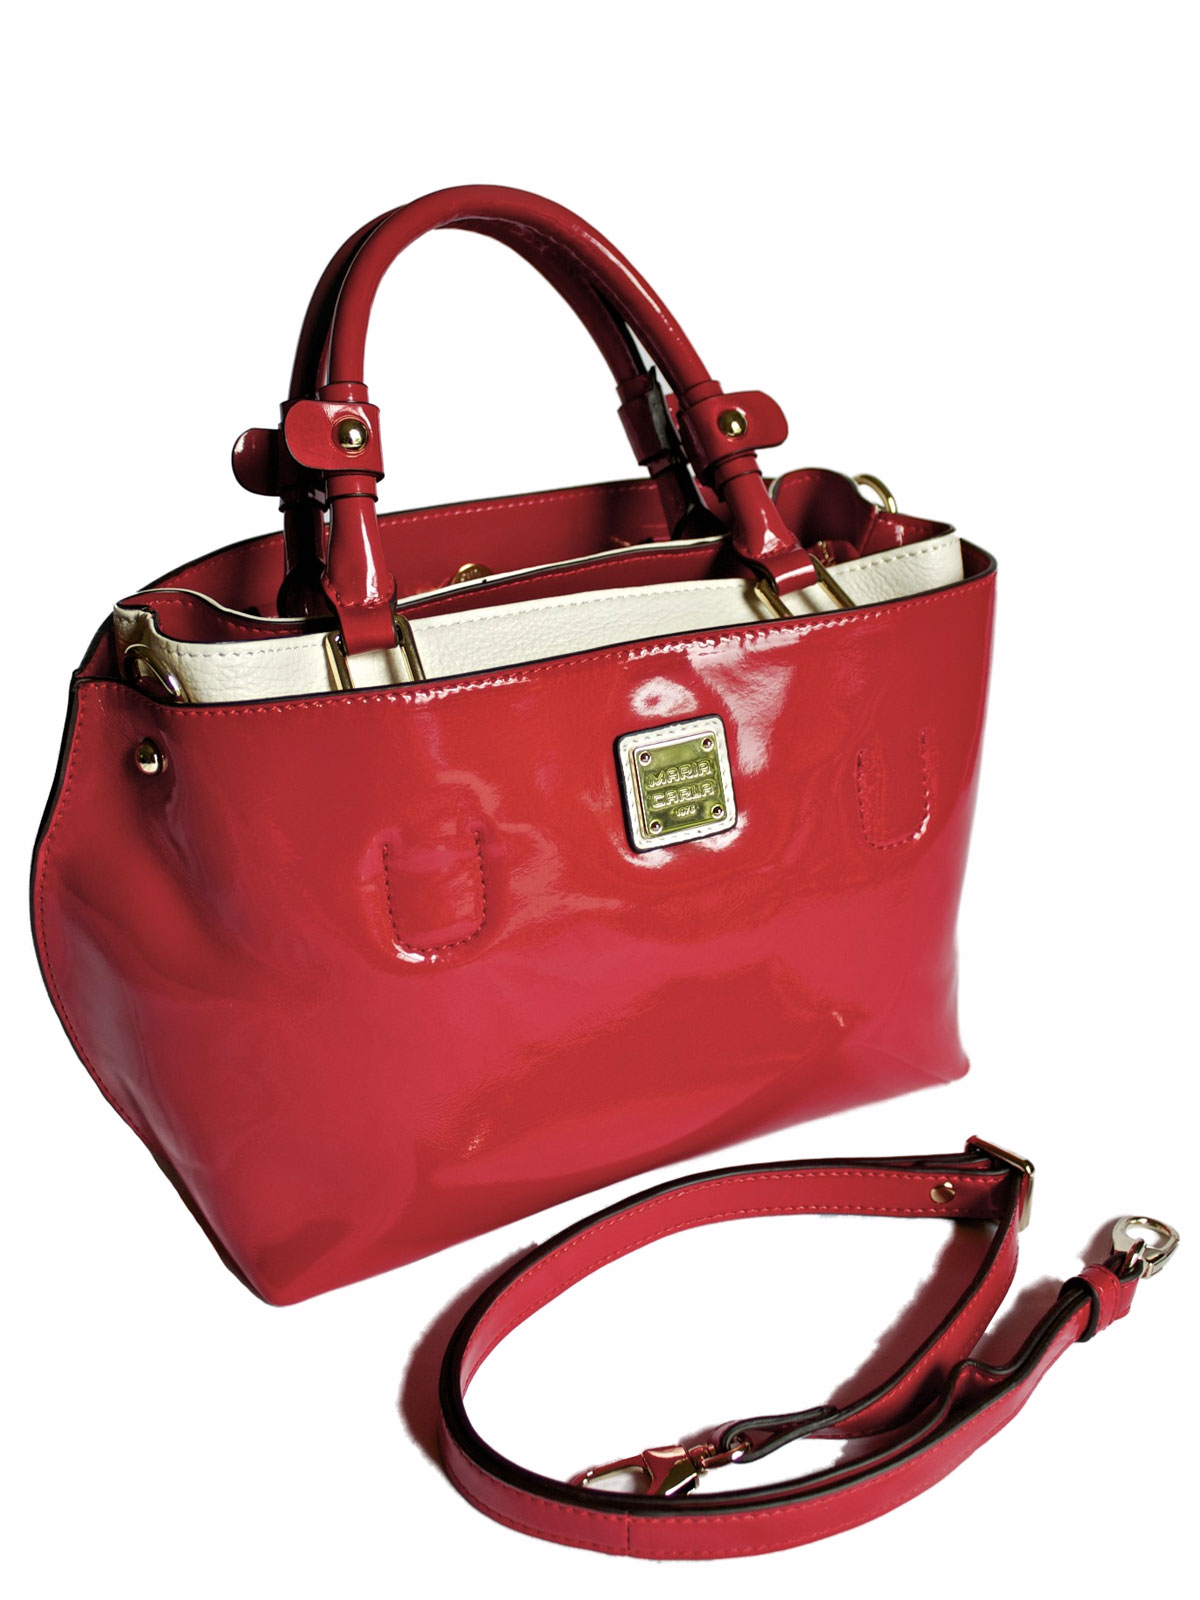 Soft Patent Leather Grab Bag - Maria Carla - Tout Ensemble 06a71e68636a